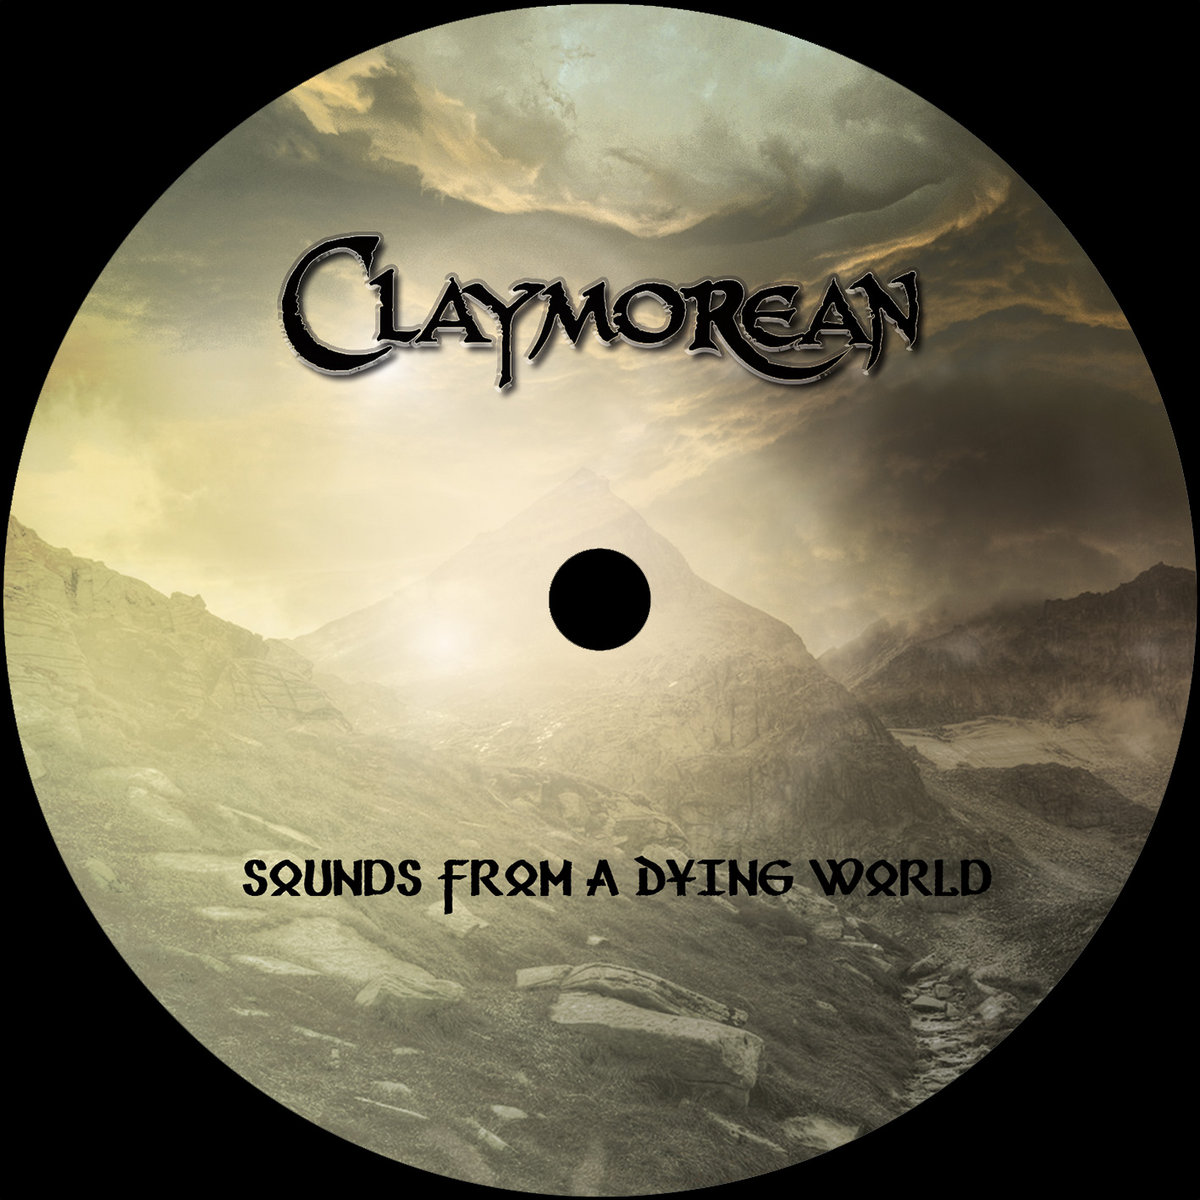 Sounds from a Dying World | Claymorean